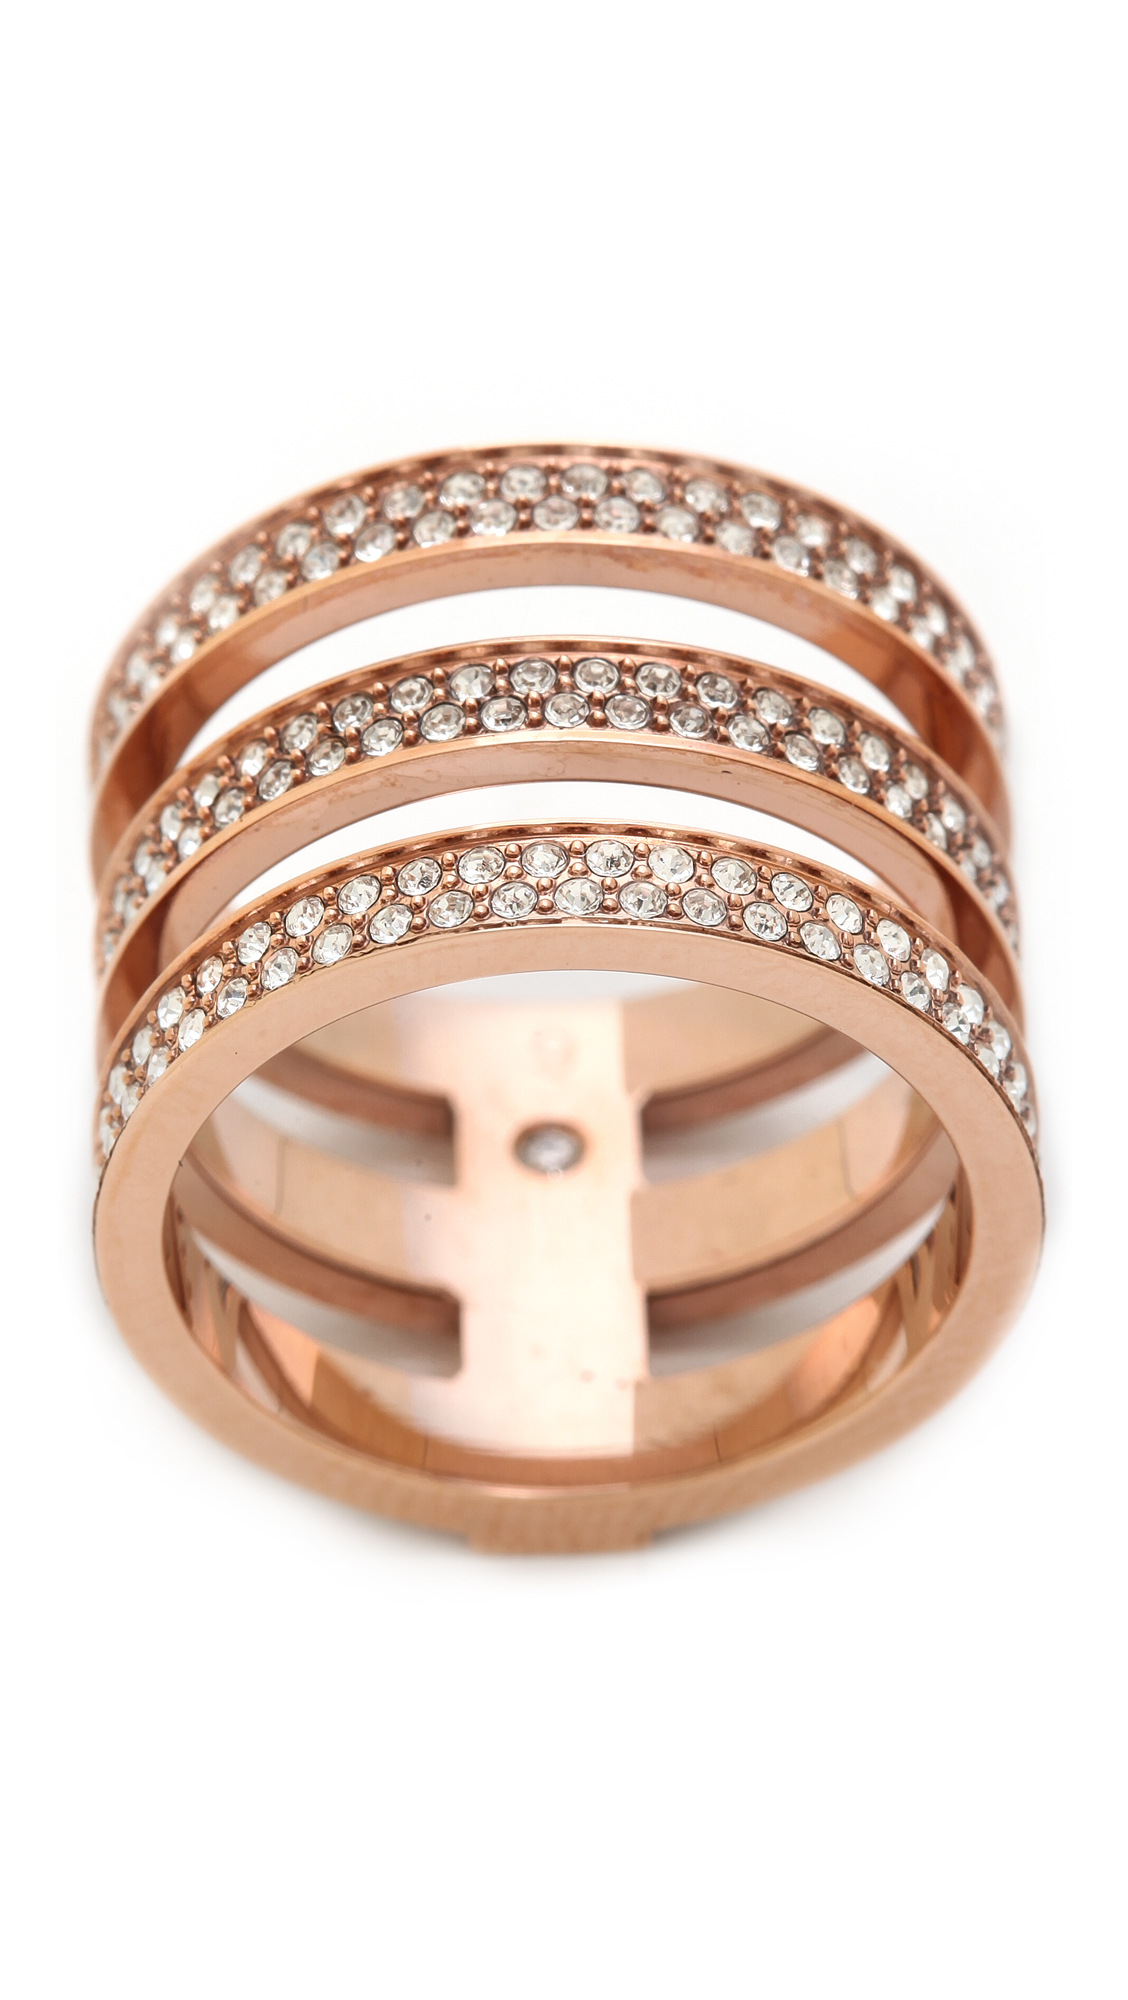 michael criss metallic ring lyst tri jewelry cross kors normal product rings in tritone gallery